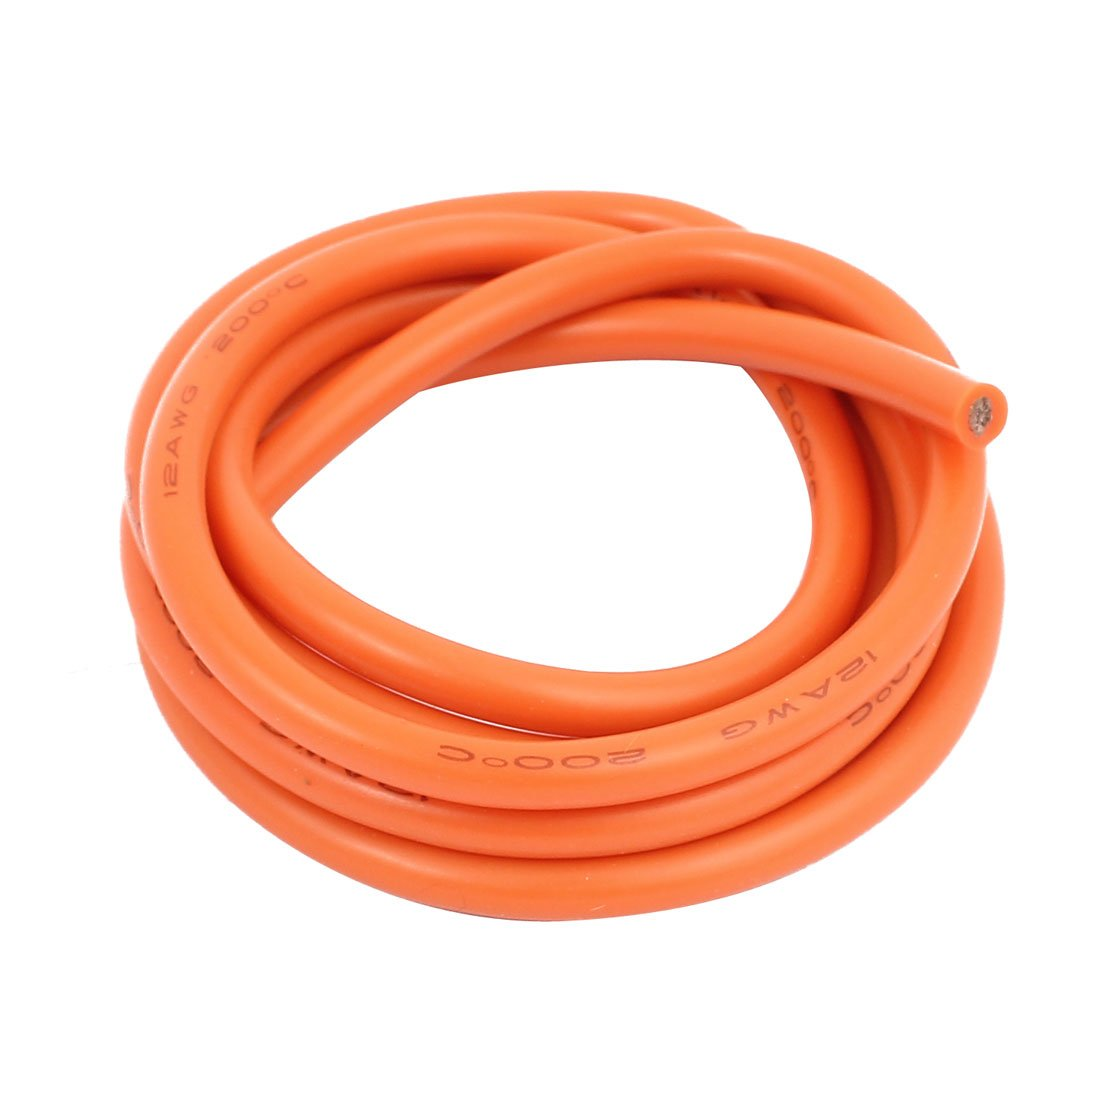 Aexit 1 Meter Video Cables 12AWG Orange Gauge Flexible Stranded Copper Cable Silicone Wire for Firewire Cables for RC